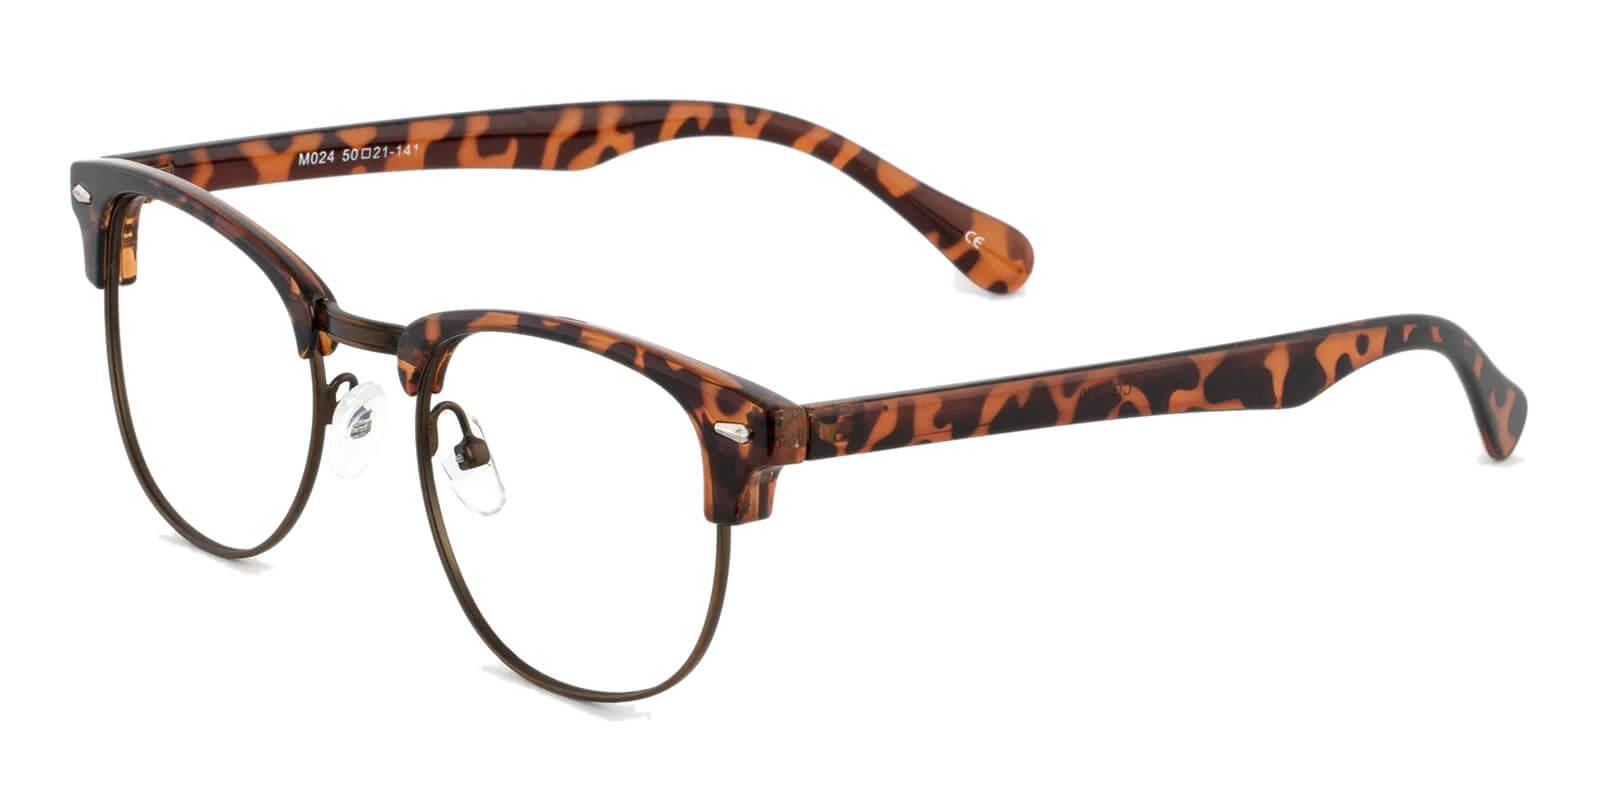 Chad Leopard Metal , Combination , Plastic NosePads , Eyeglasses Frames from ABBE Glasses